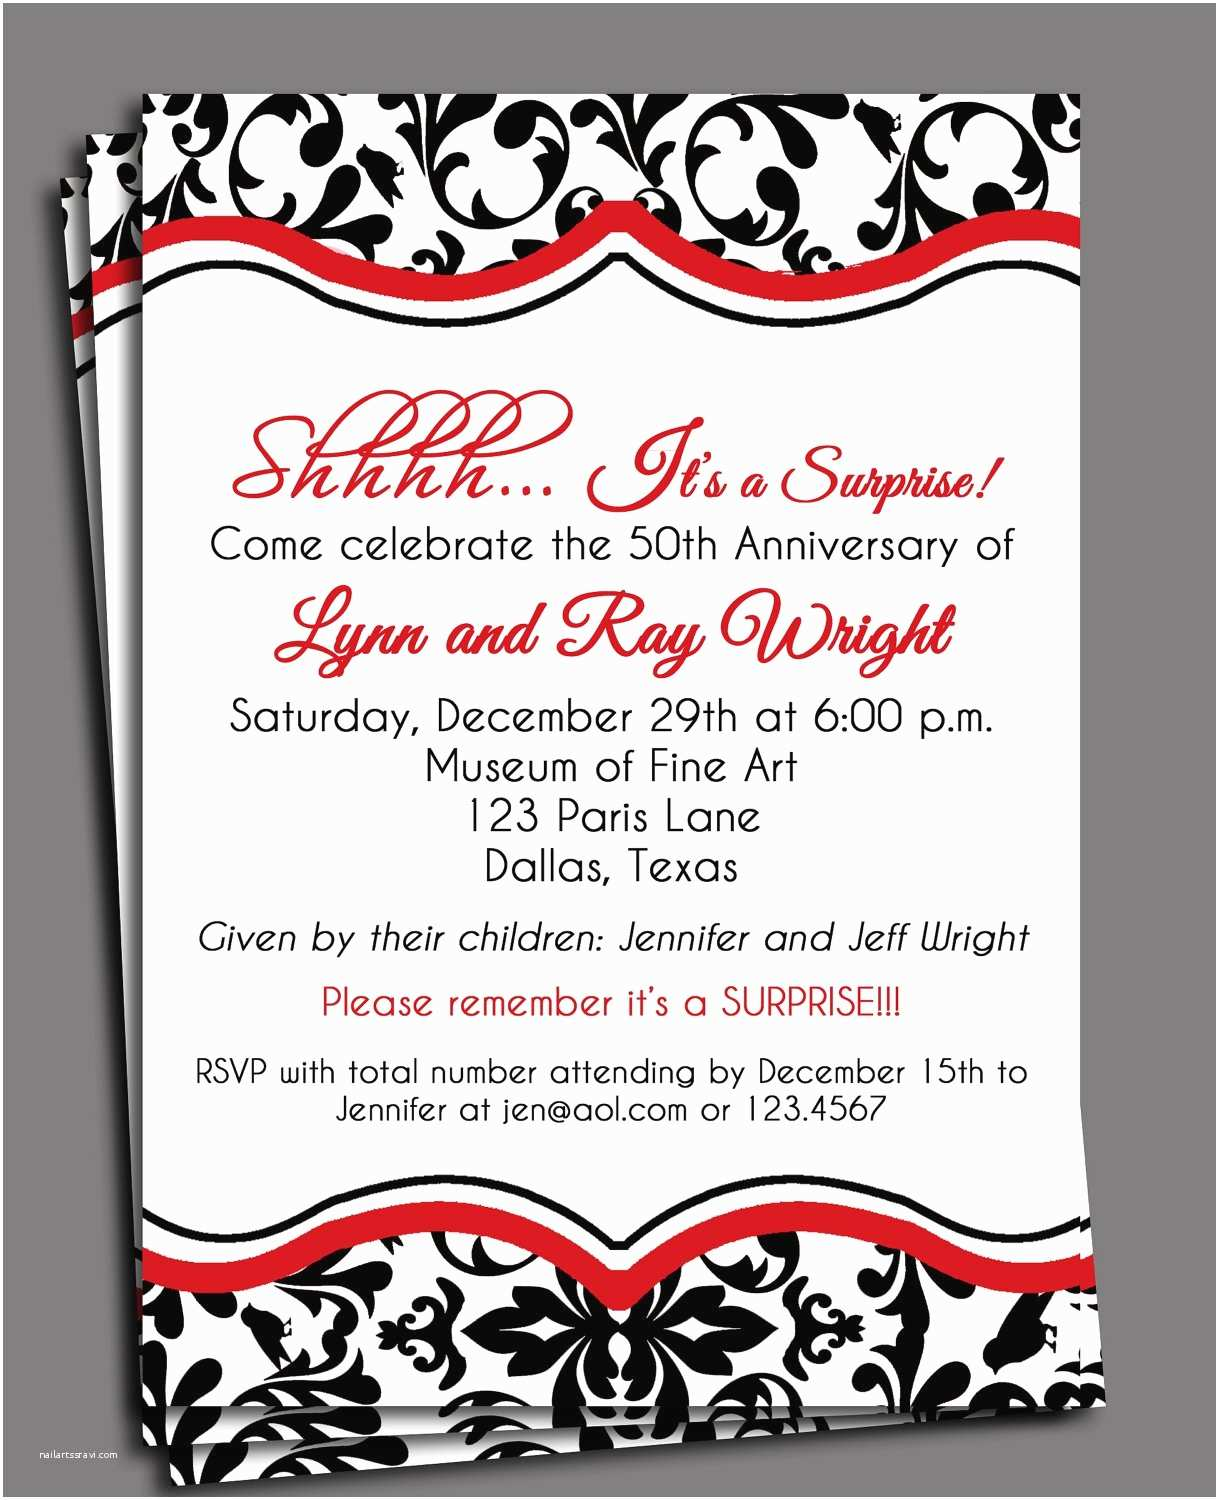 Invitation Wording for Adults Only Party Sample Birthday Invitation Wording for Adults